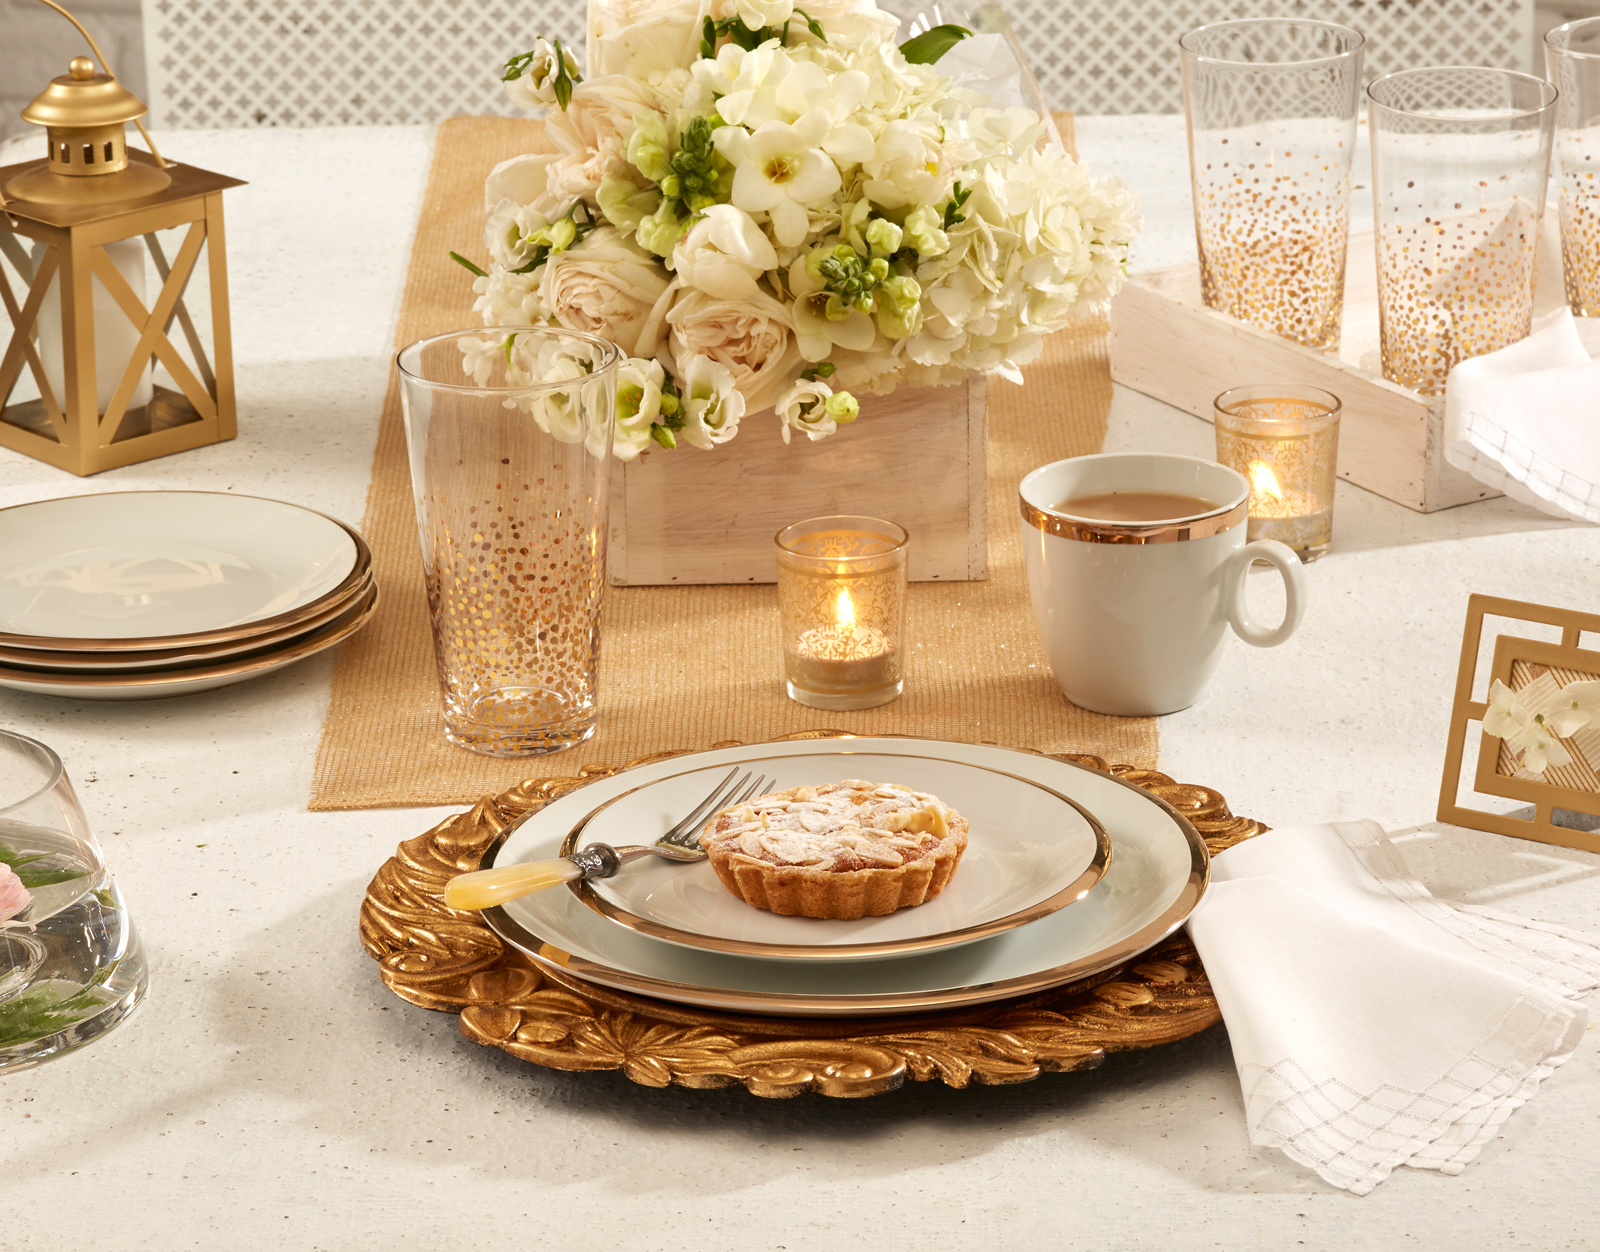 247886-APP-05-02-15-ENTERTAINING  MULTI ELEGANT DINNER PARTY-DM-1.jpg